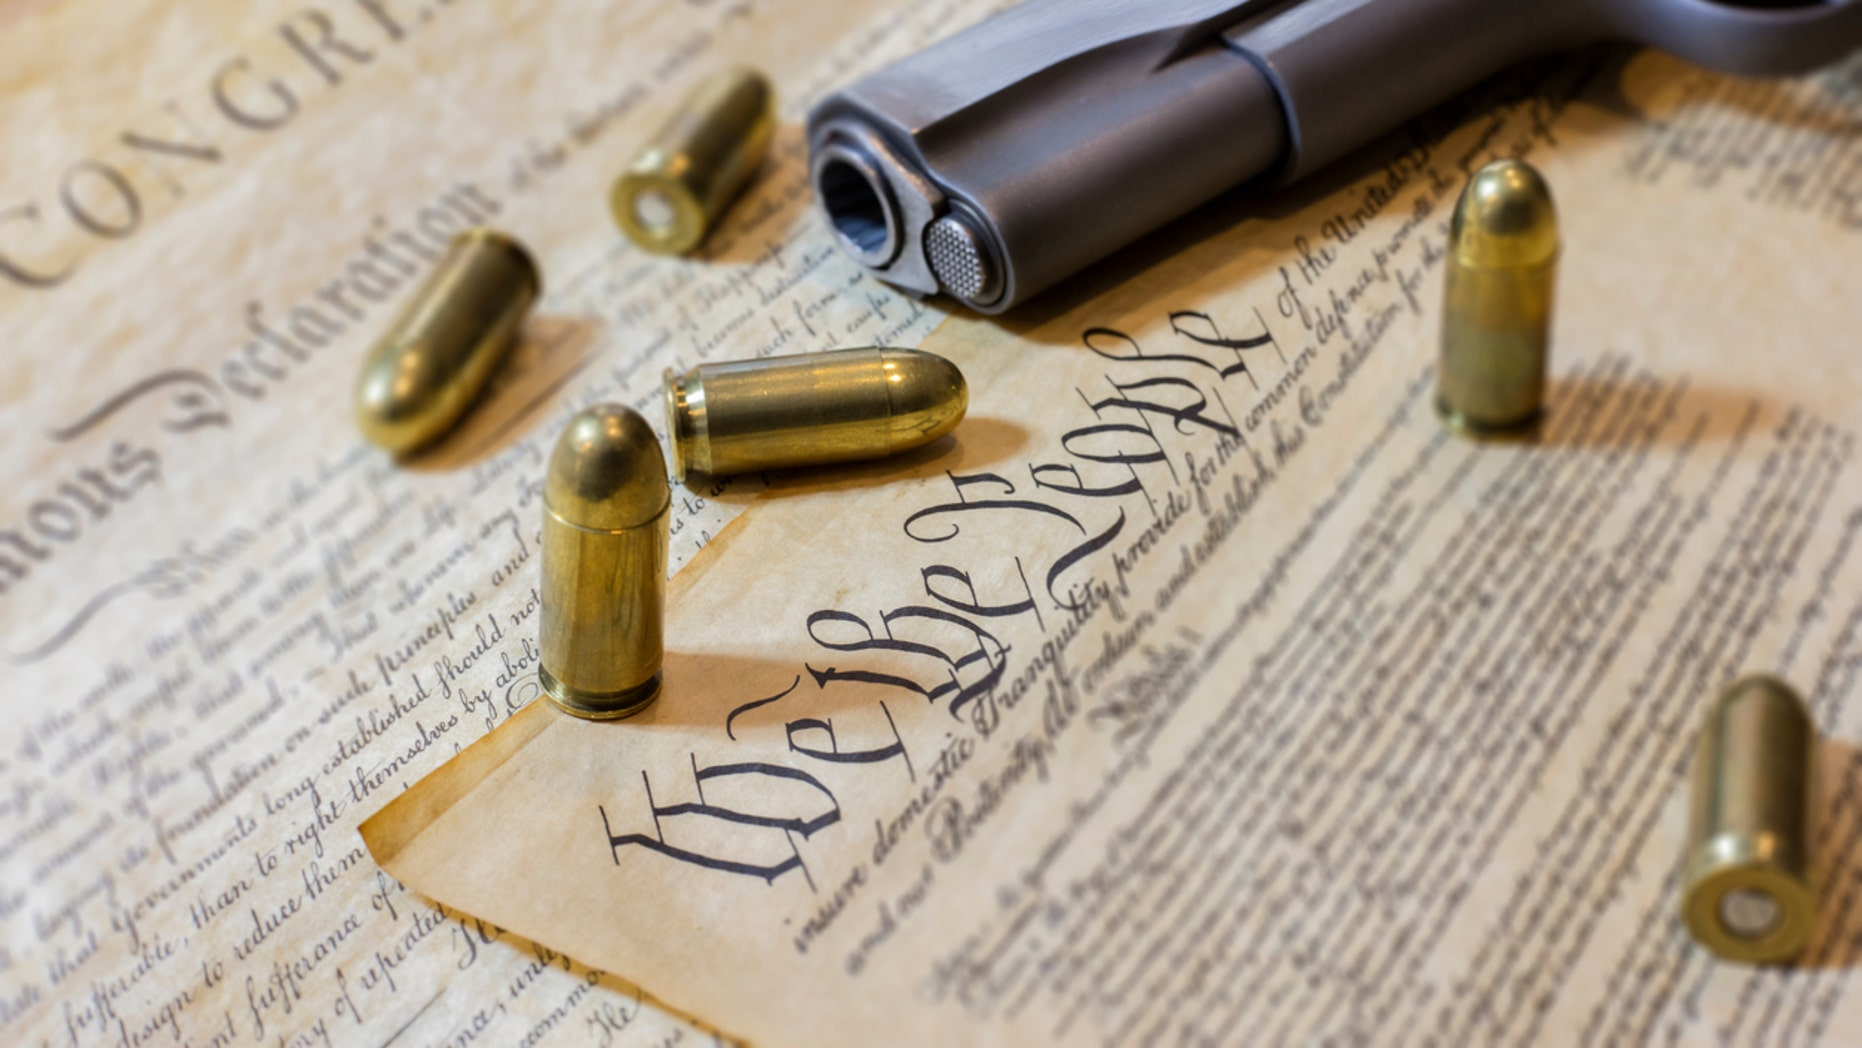 A stock photograph the of the US Constitution and a gun with bullets. Perhaps communicating USA Gun control. Photographed at 50mp with the Canon EOS 5DSR.